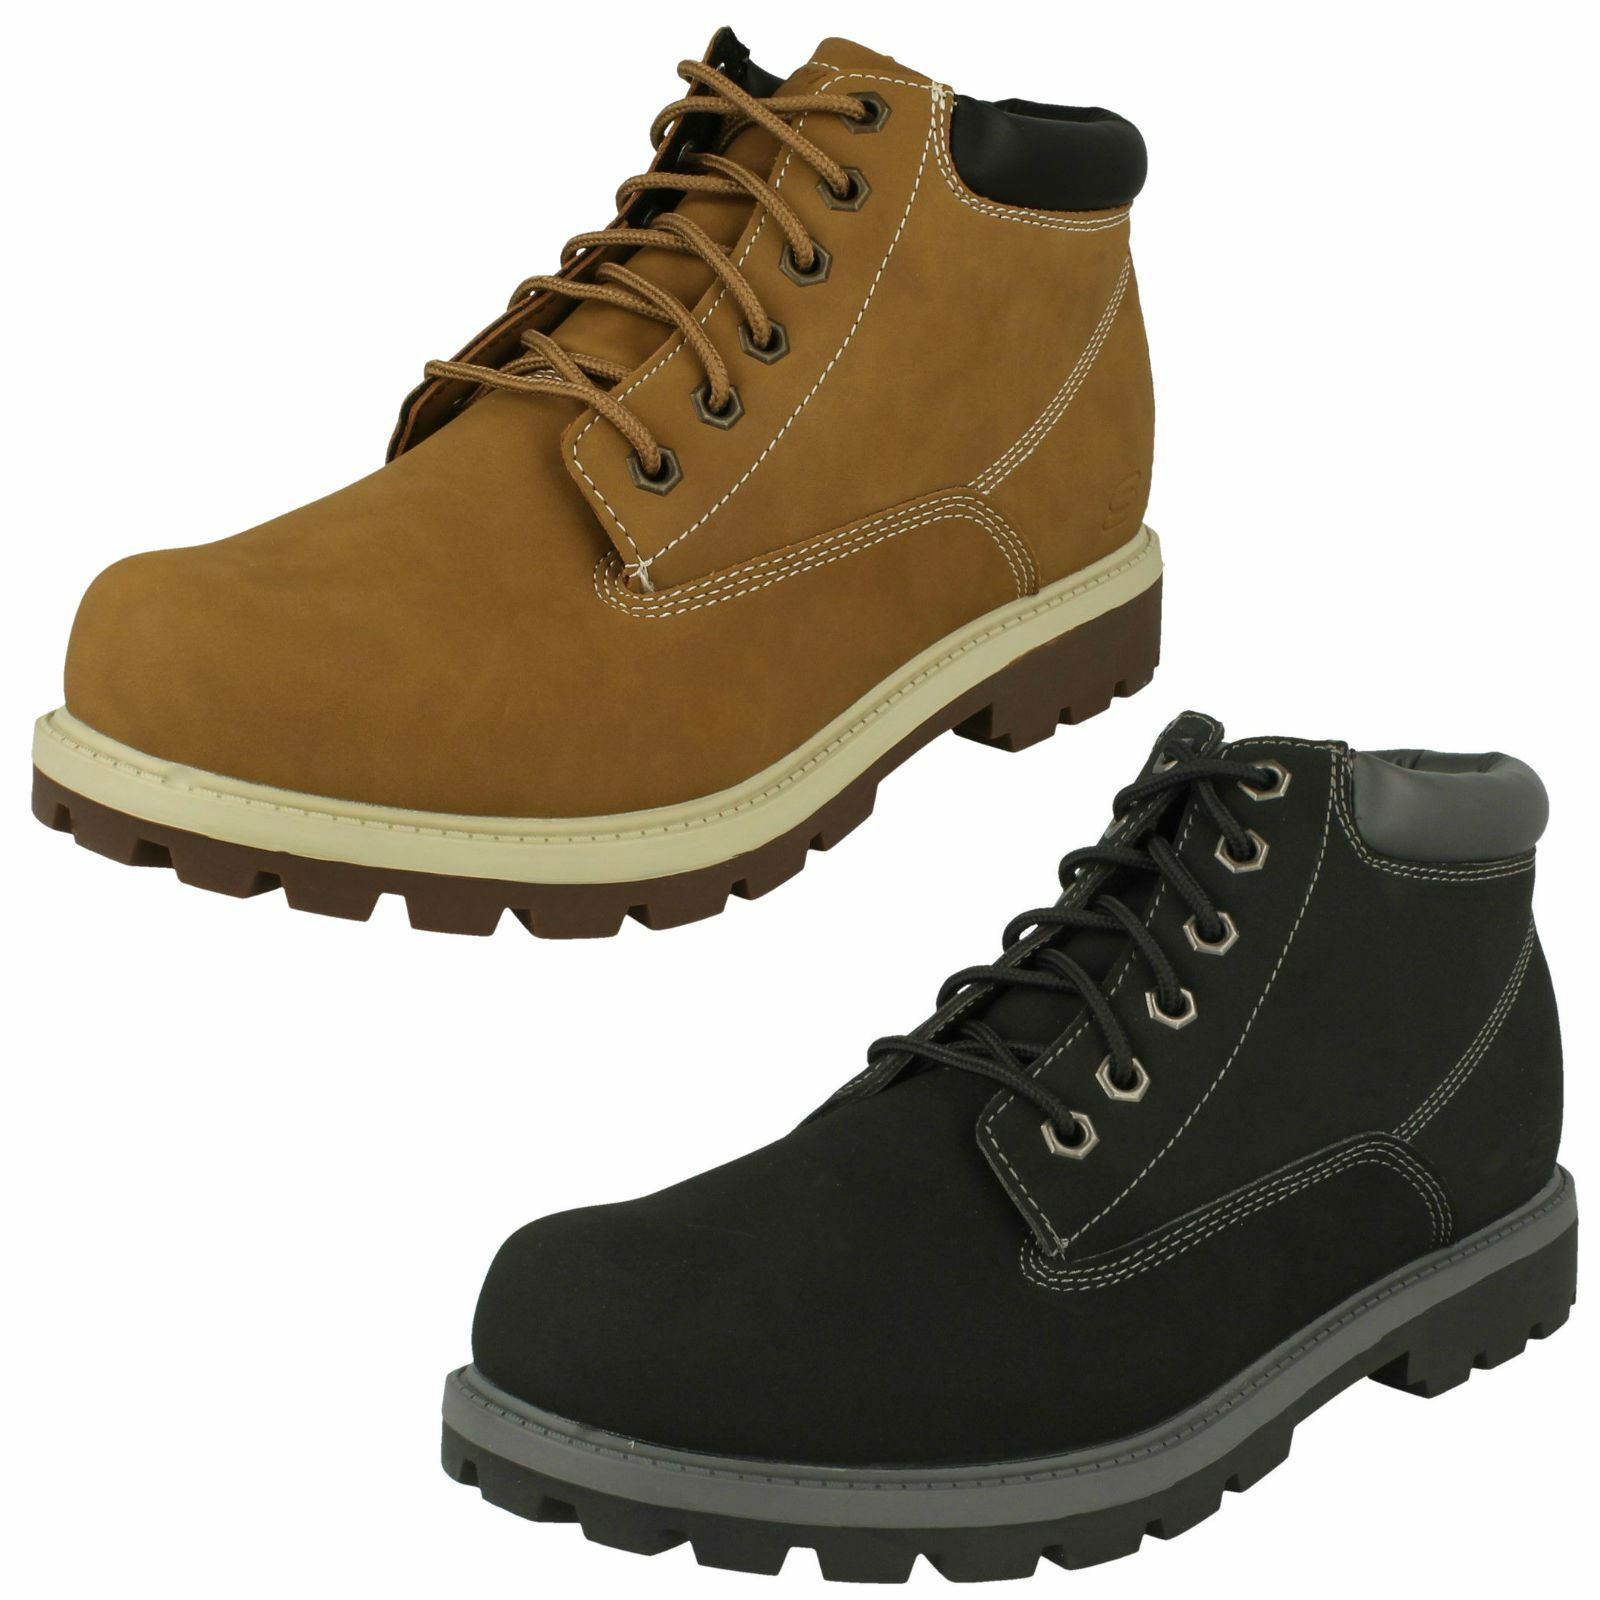 Mens Skechers 65501 Toric - Amado Synthetic Casual Lace Up Ankle Boots